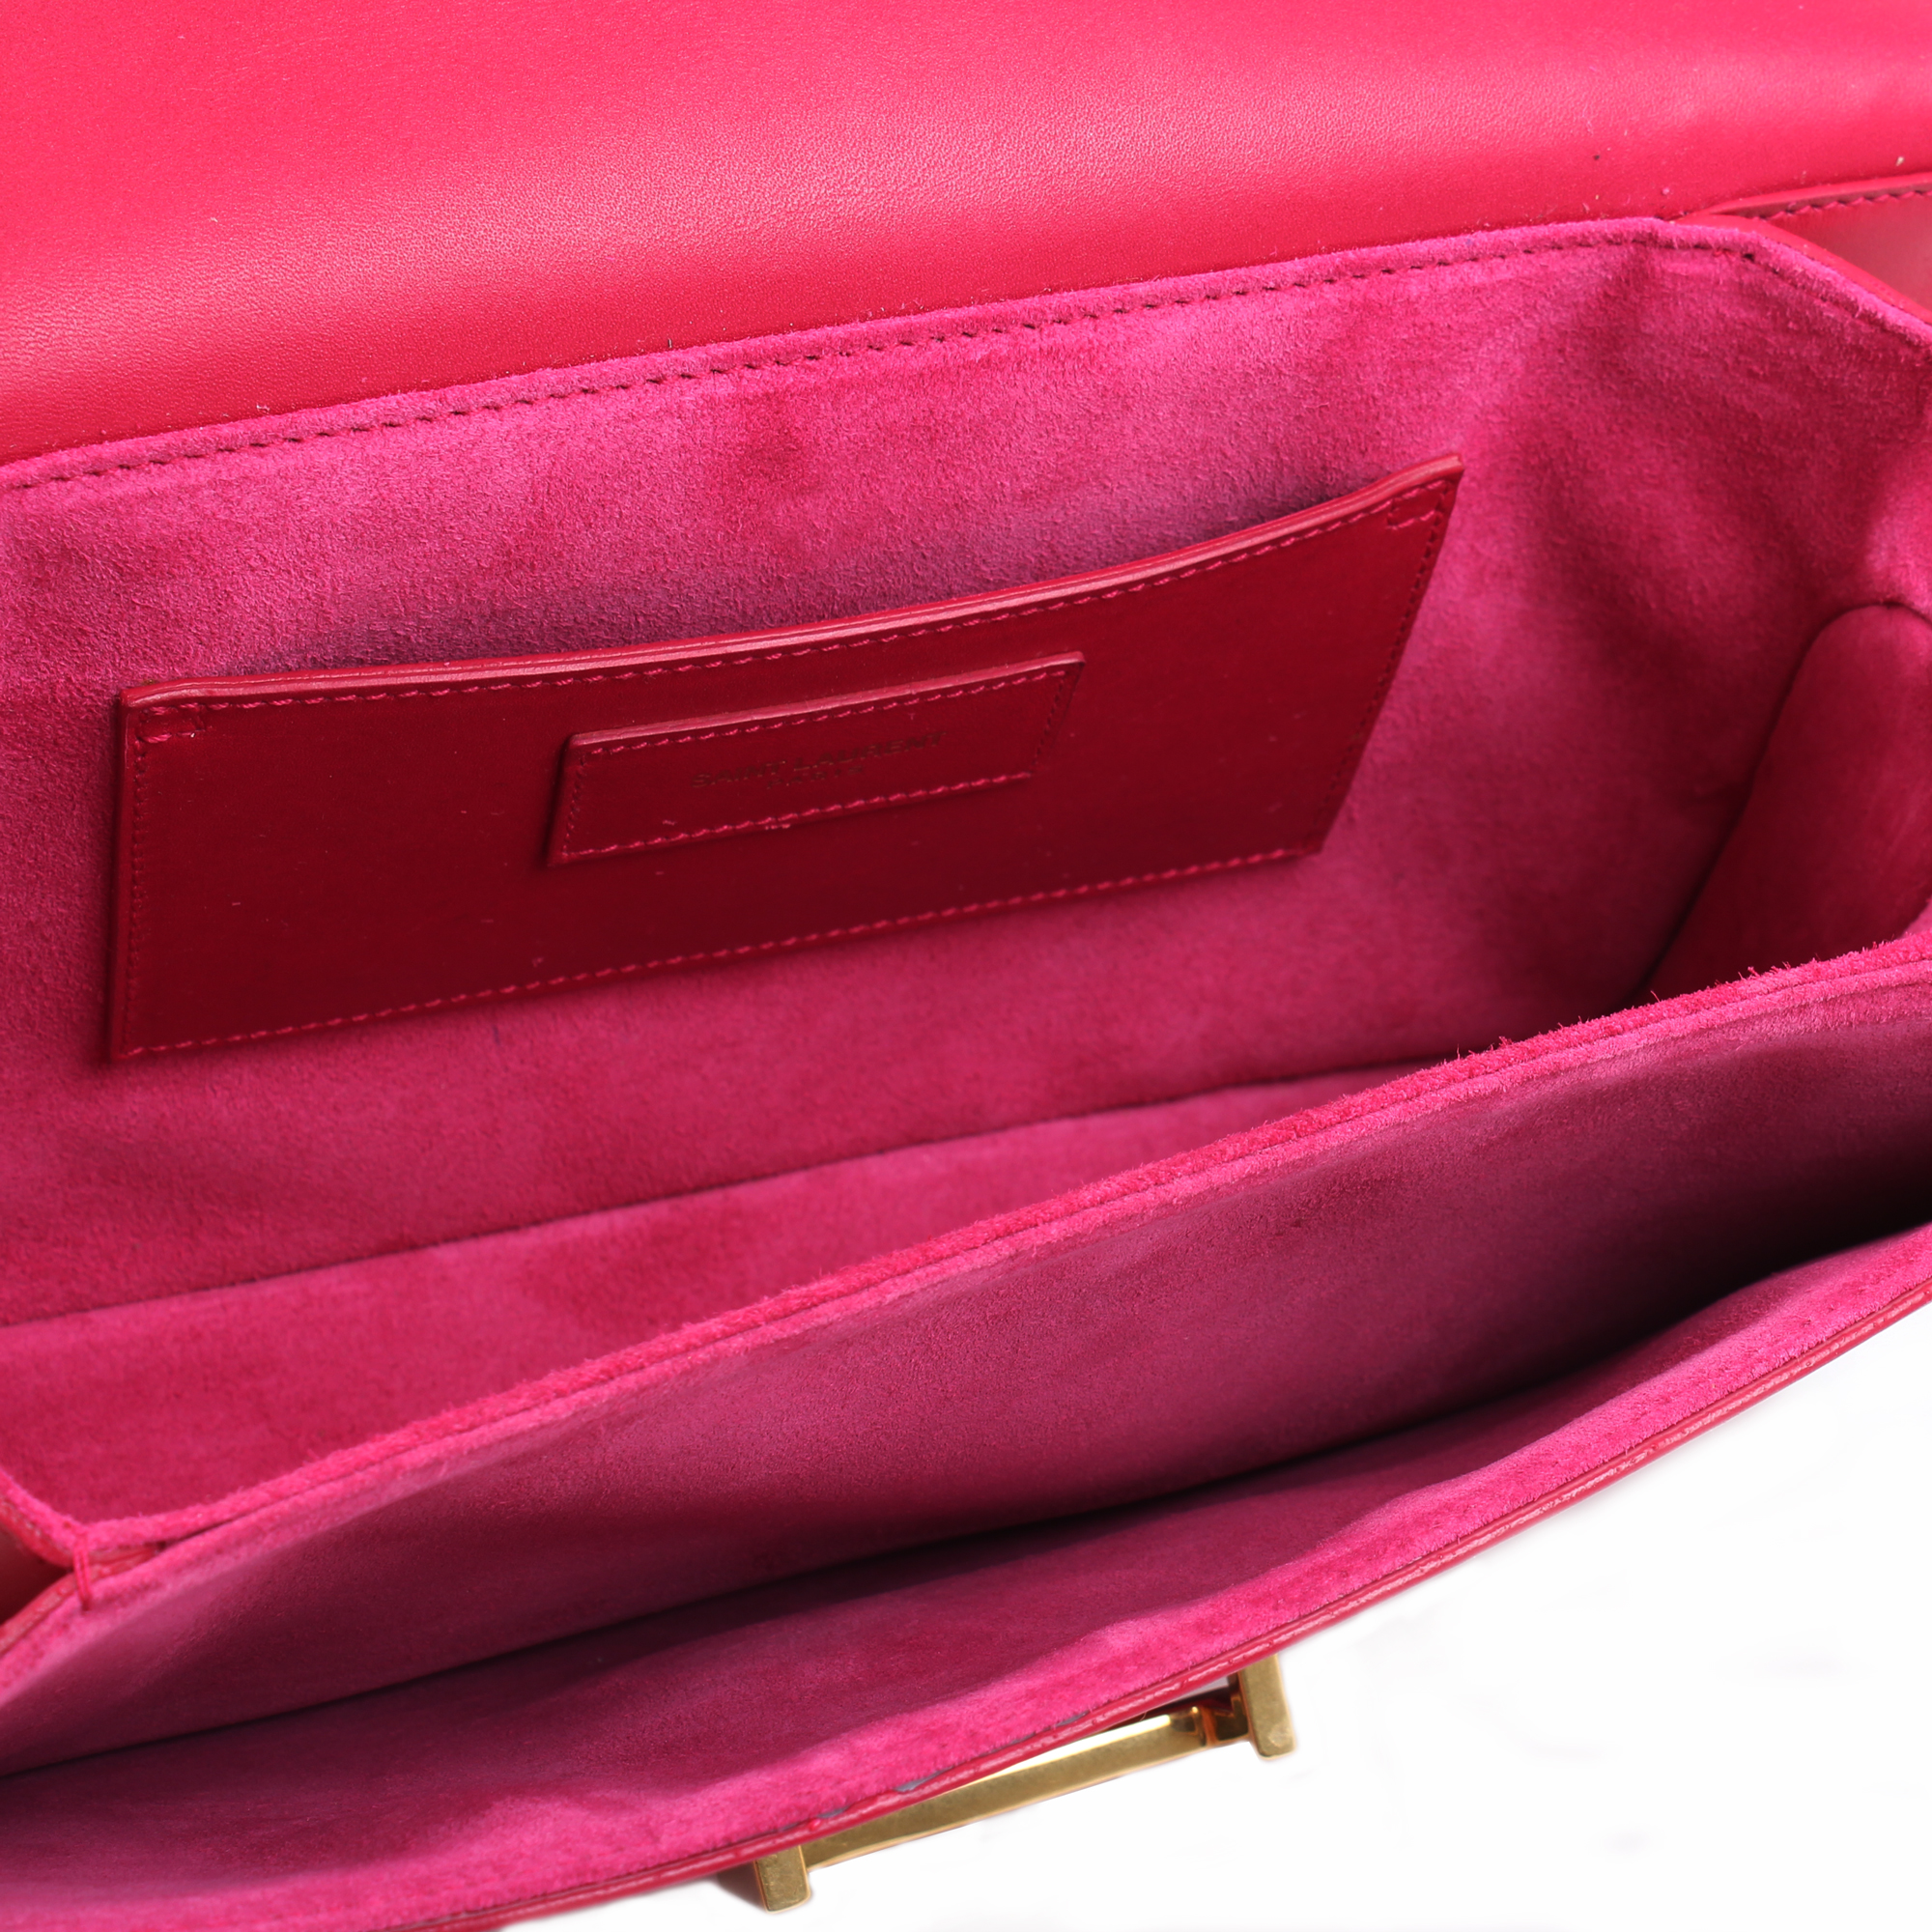 Interior image of Yves Saint Laurent Lulu shoulder bag